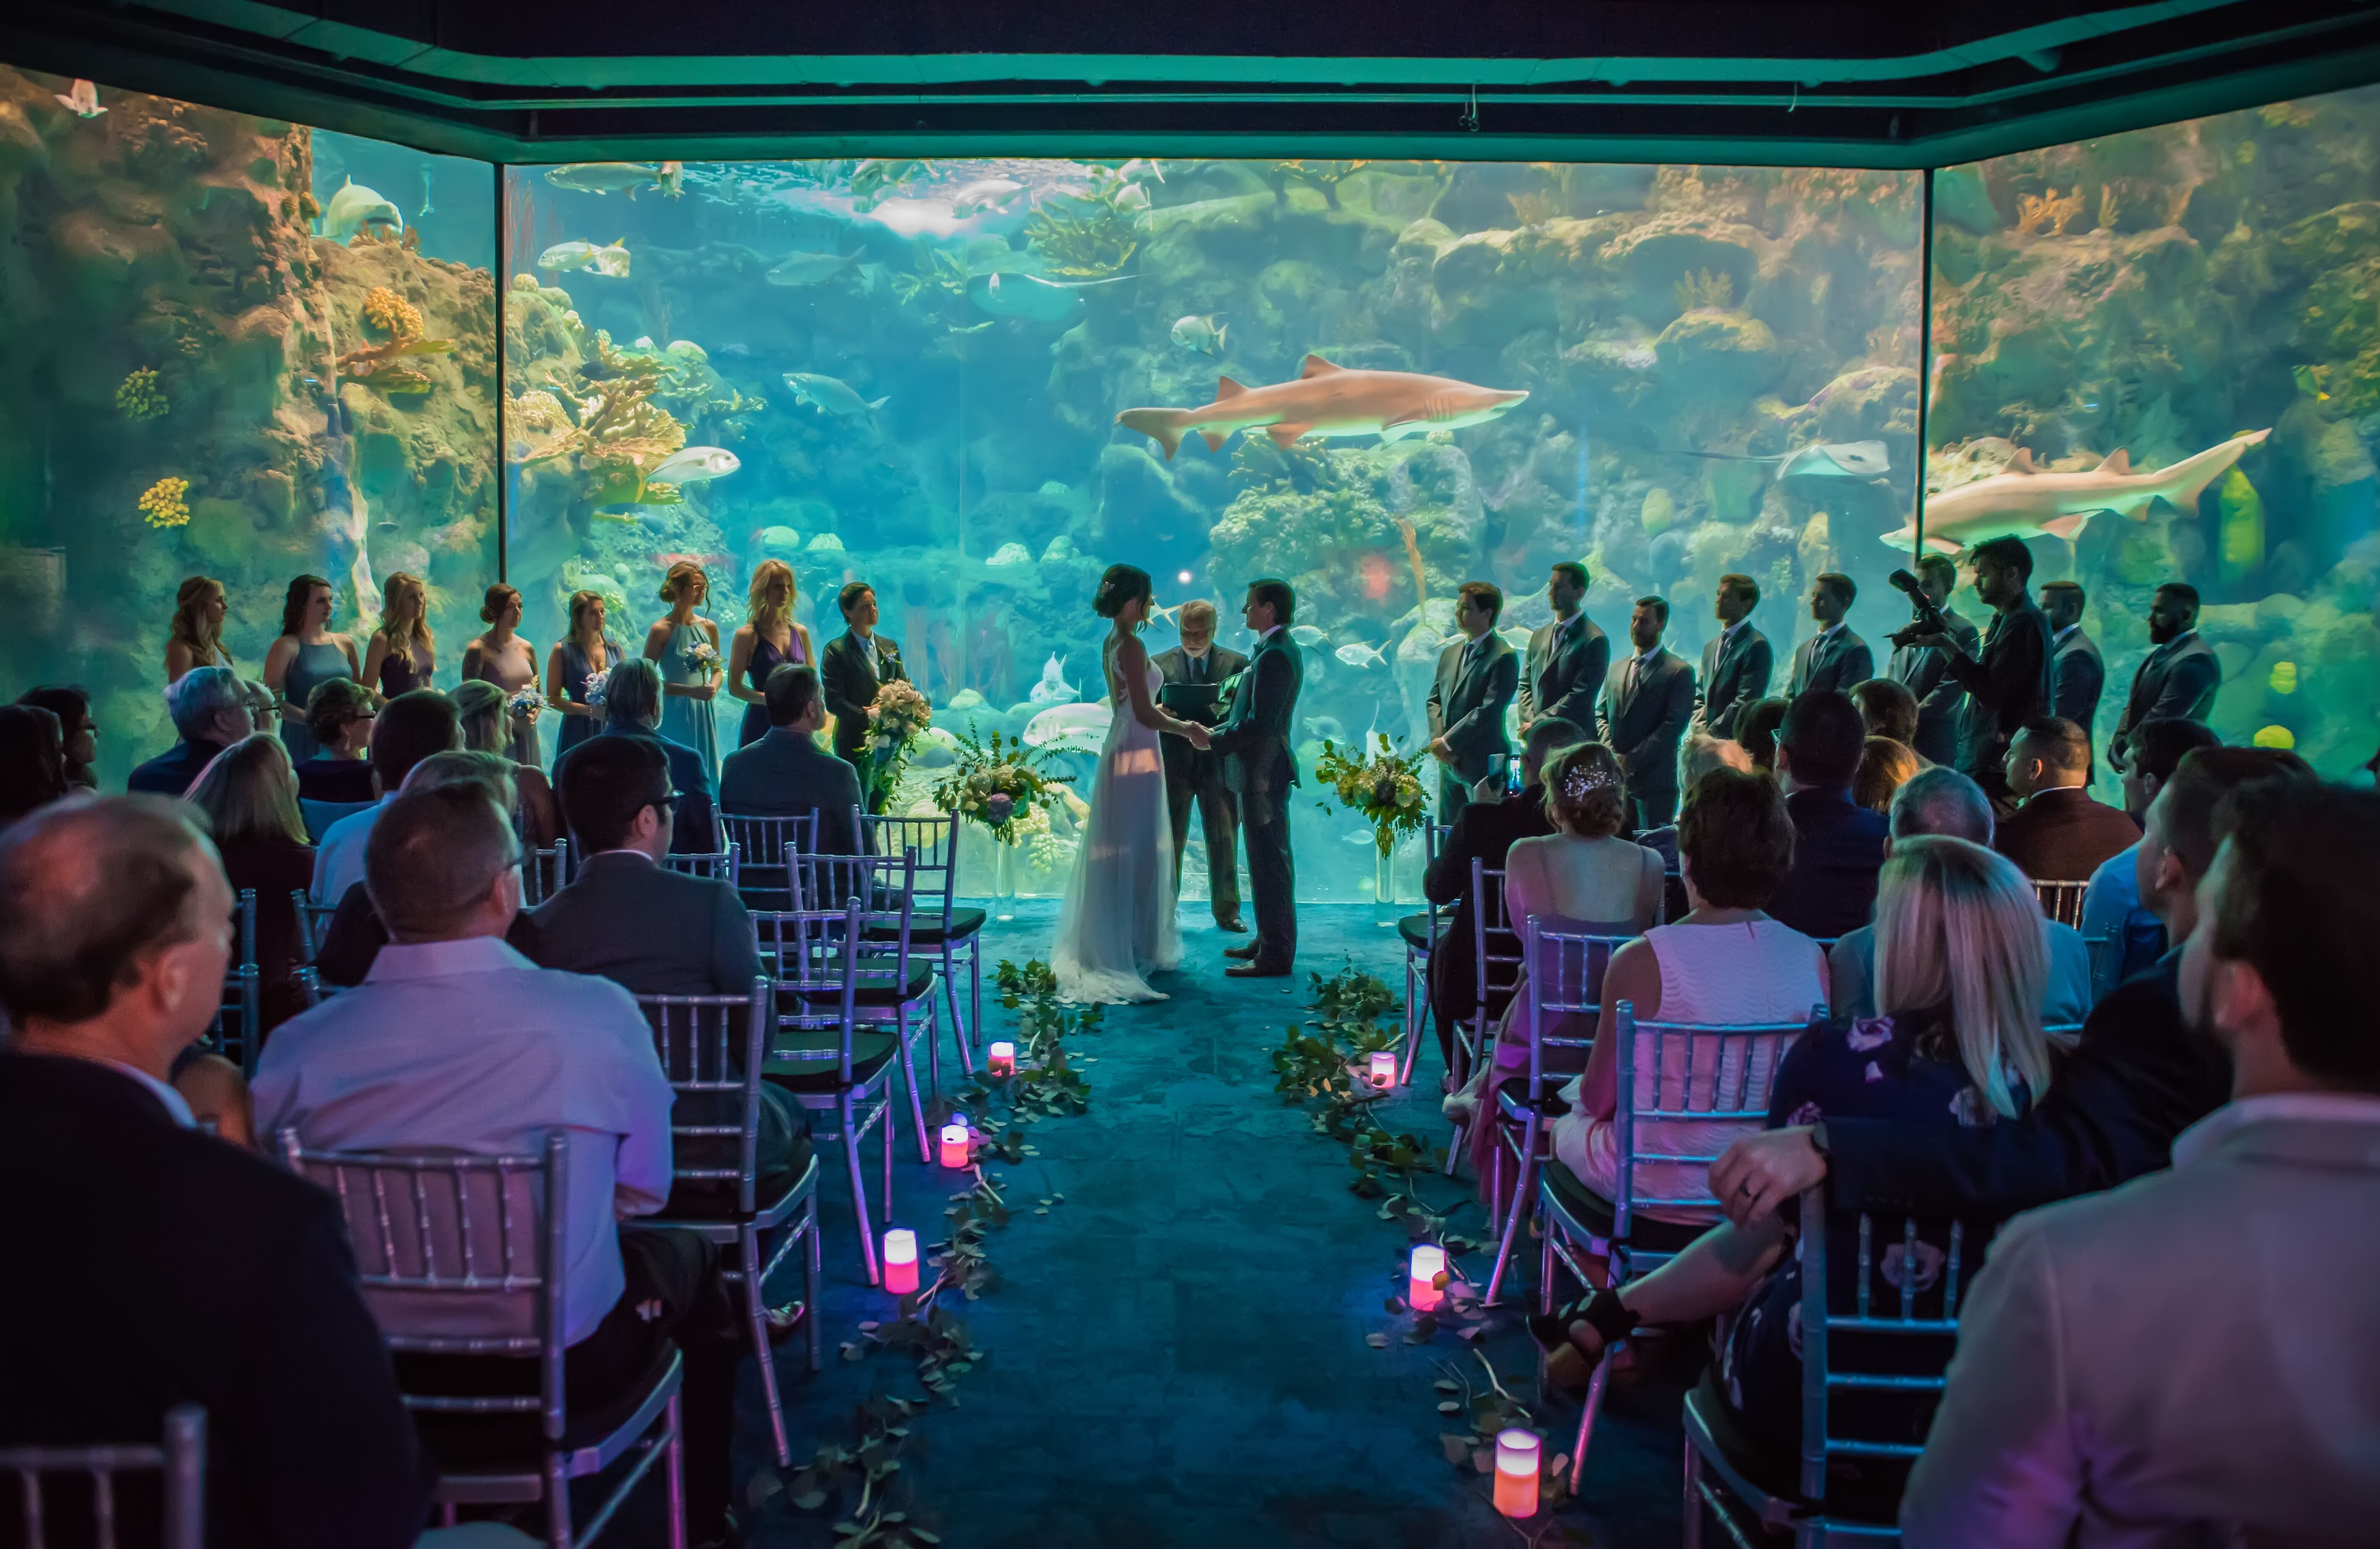 Cherished Ceremonies Weddings Tampa Wedding: Reception Venues - Tampa, FL